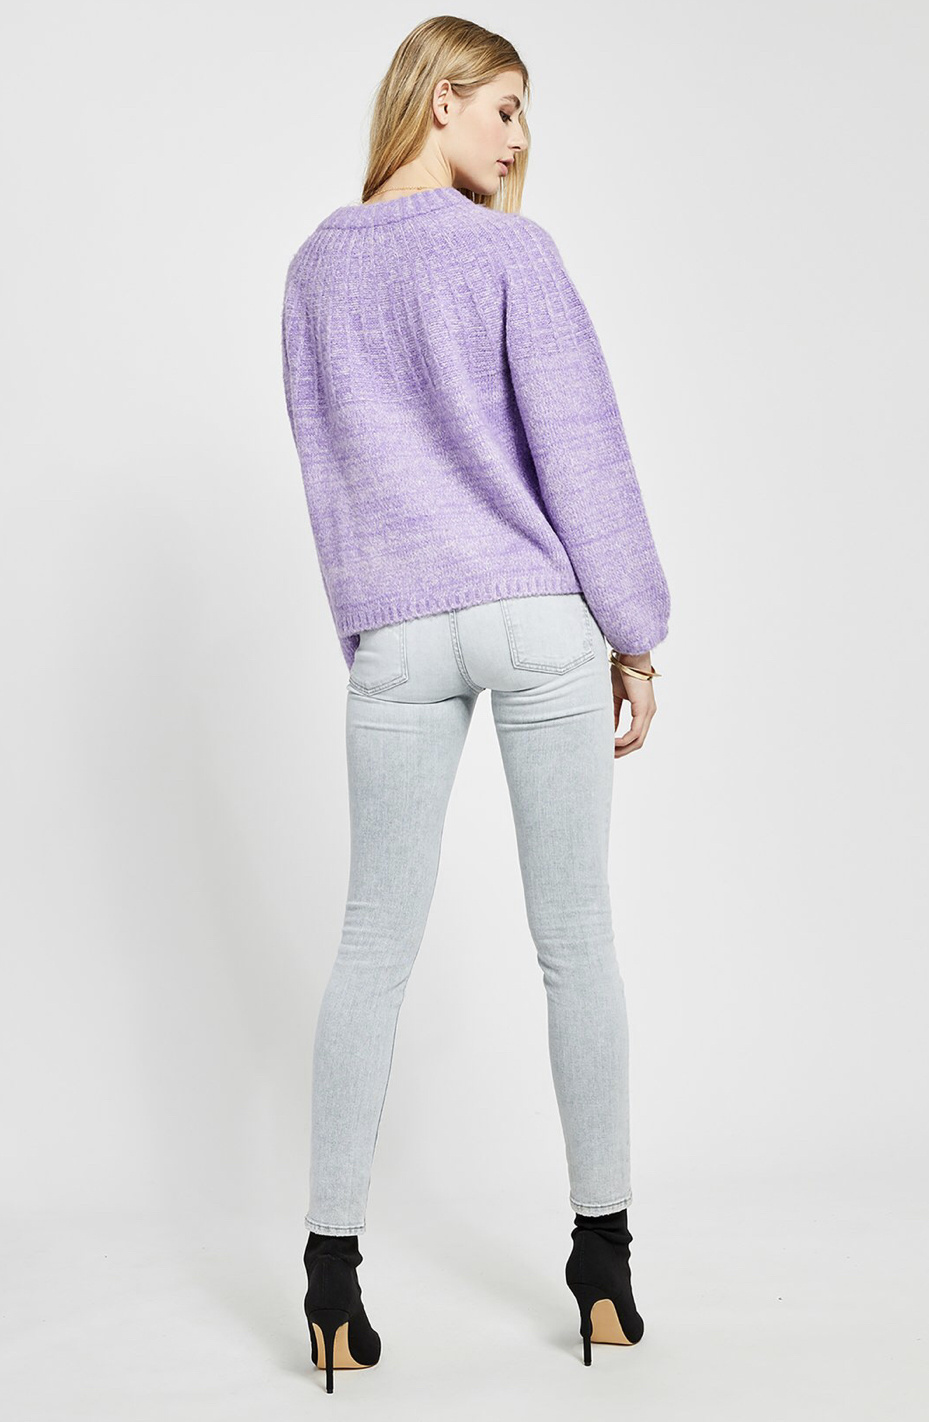 Gentlefawn Vespa Cozy Knit